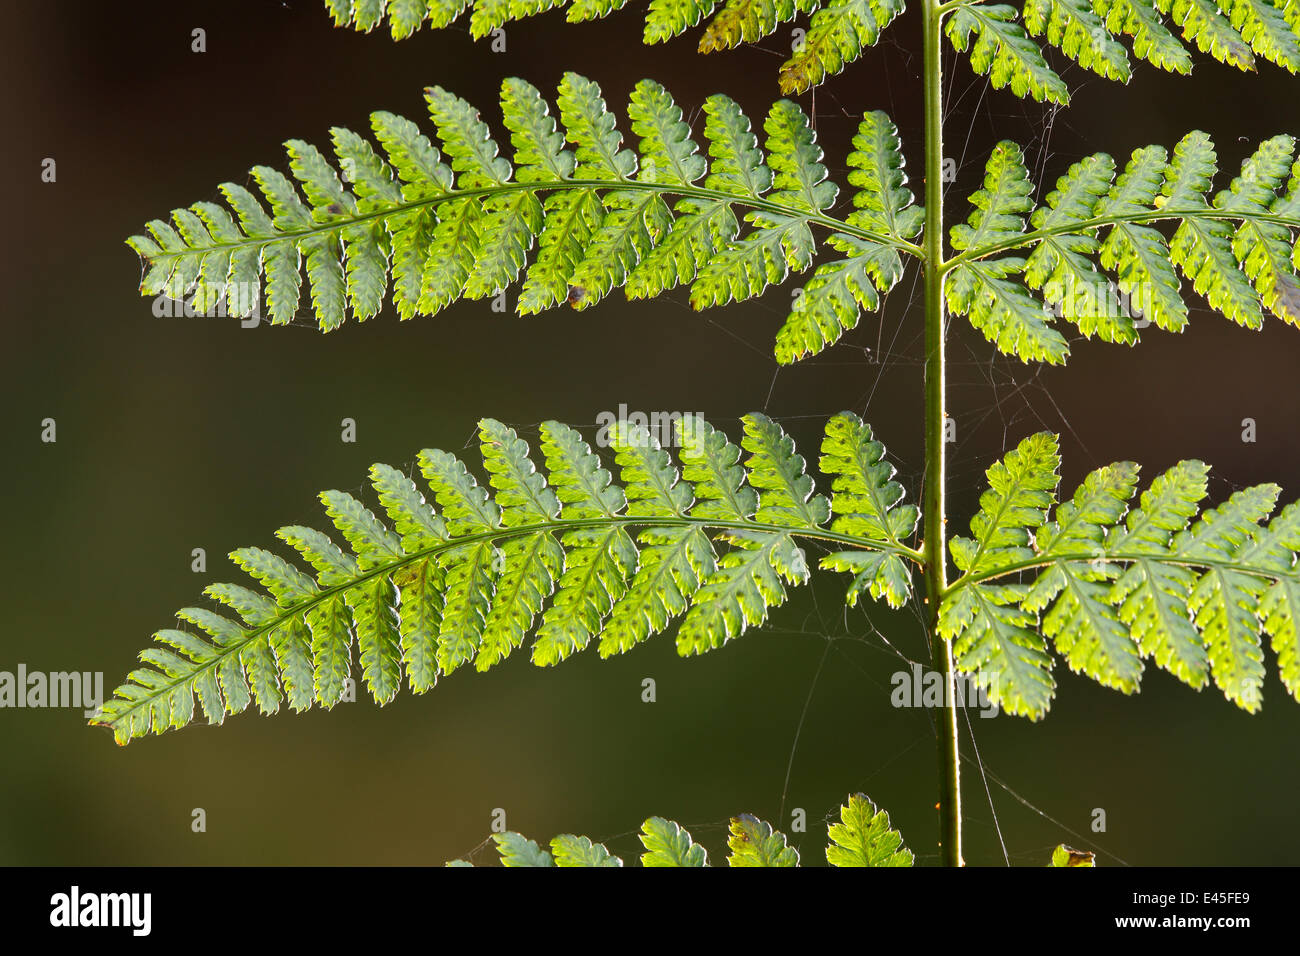 Close-up of Fern frond with spiders webs on it, Dlouhy Dul, Ceske Svycarsko / Bohemian Switzerland National Park, - Stock Image